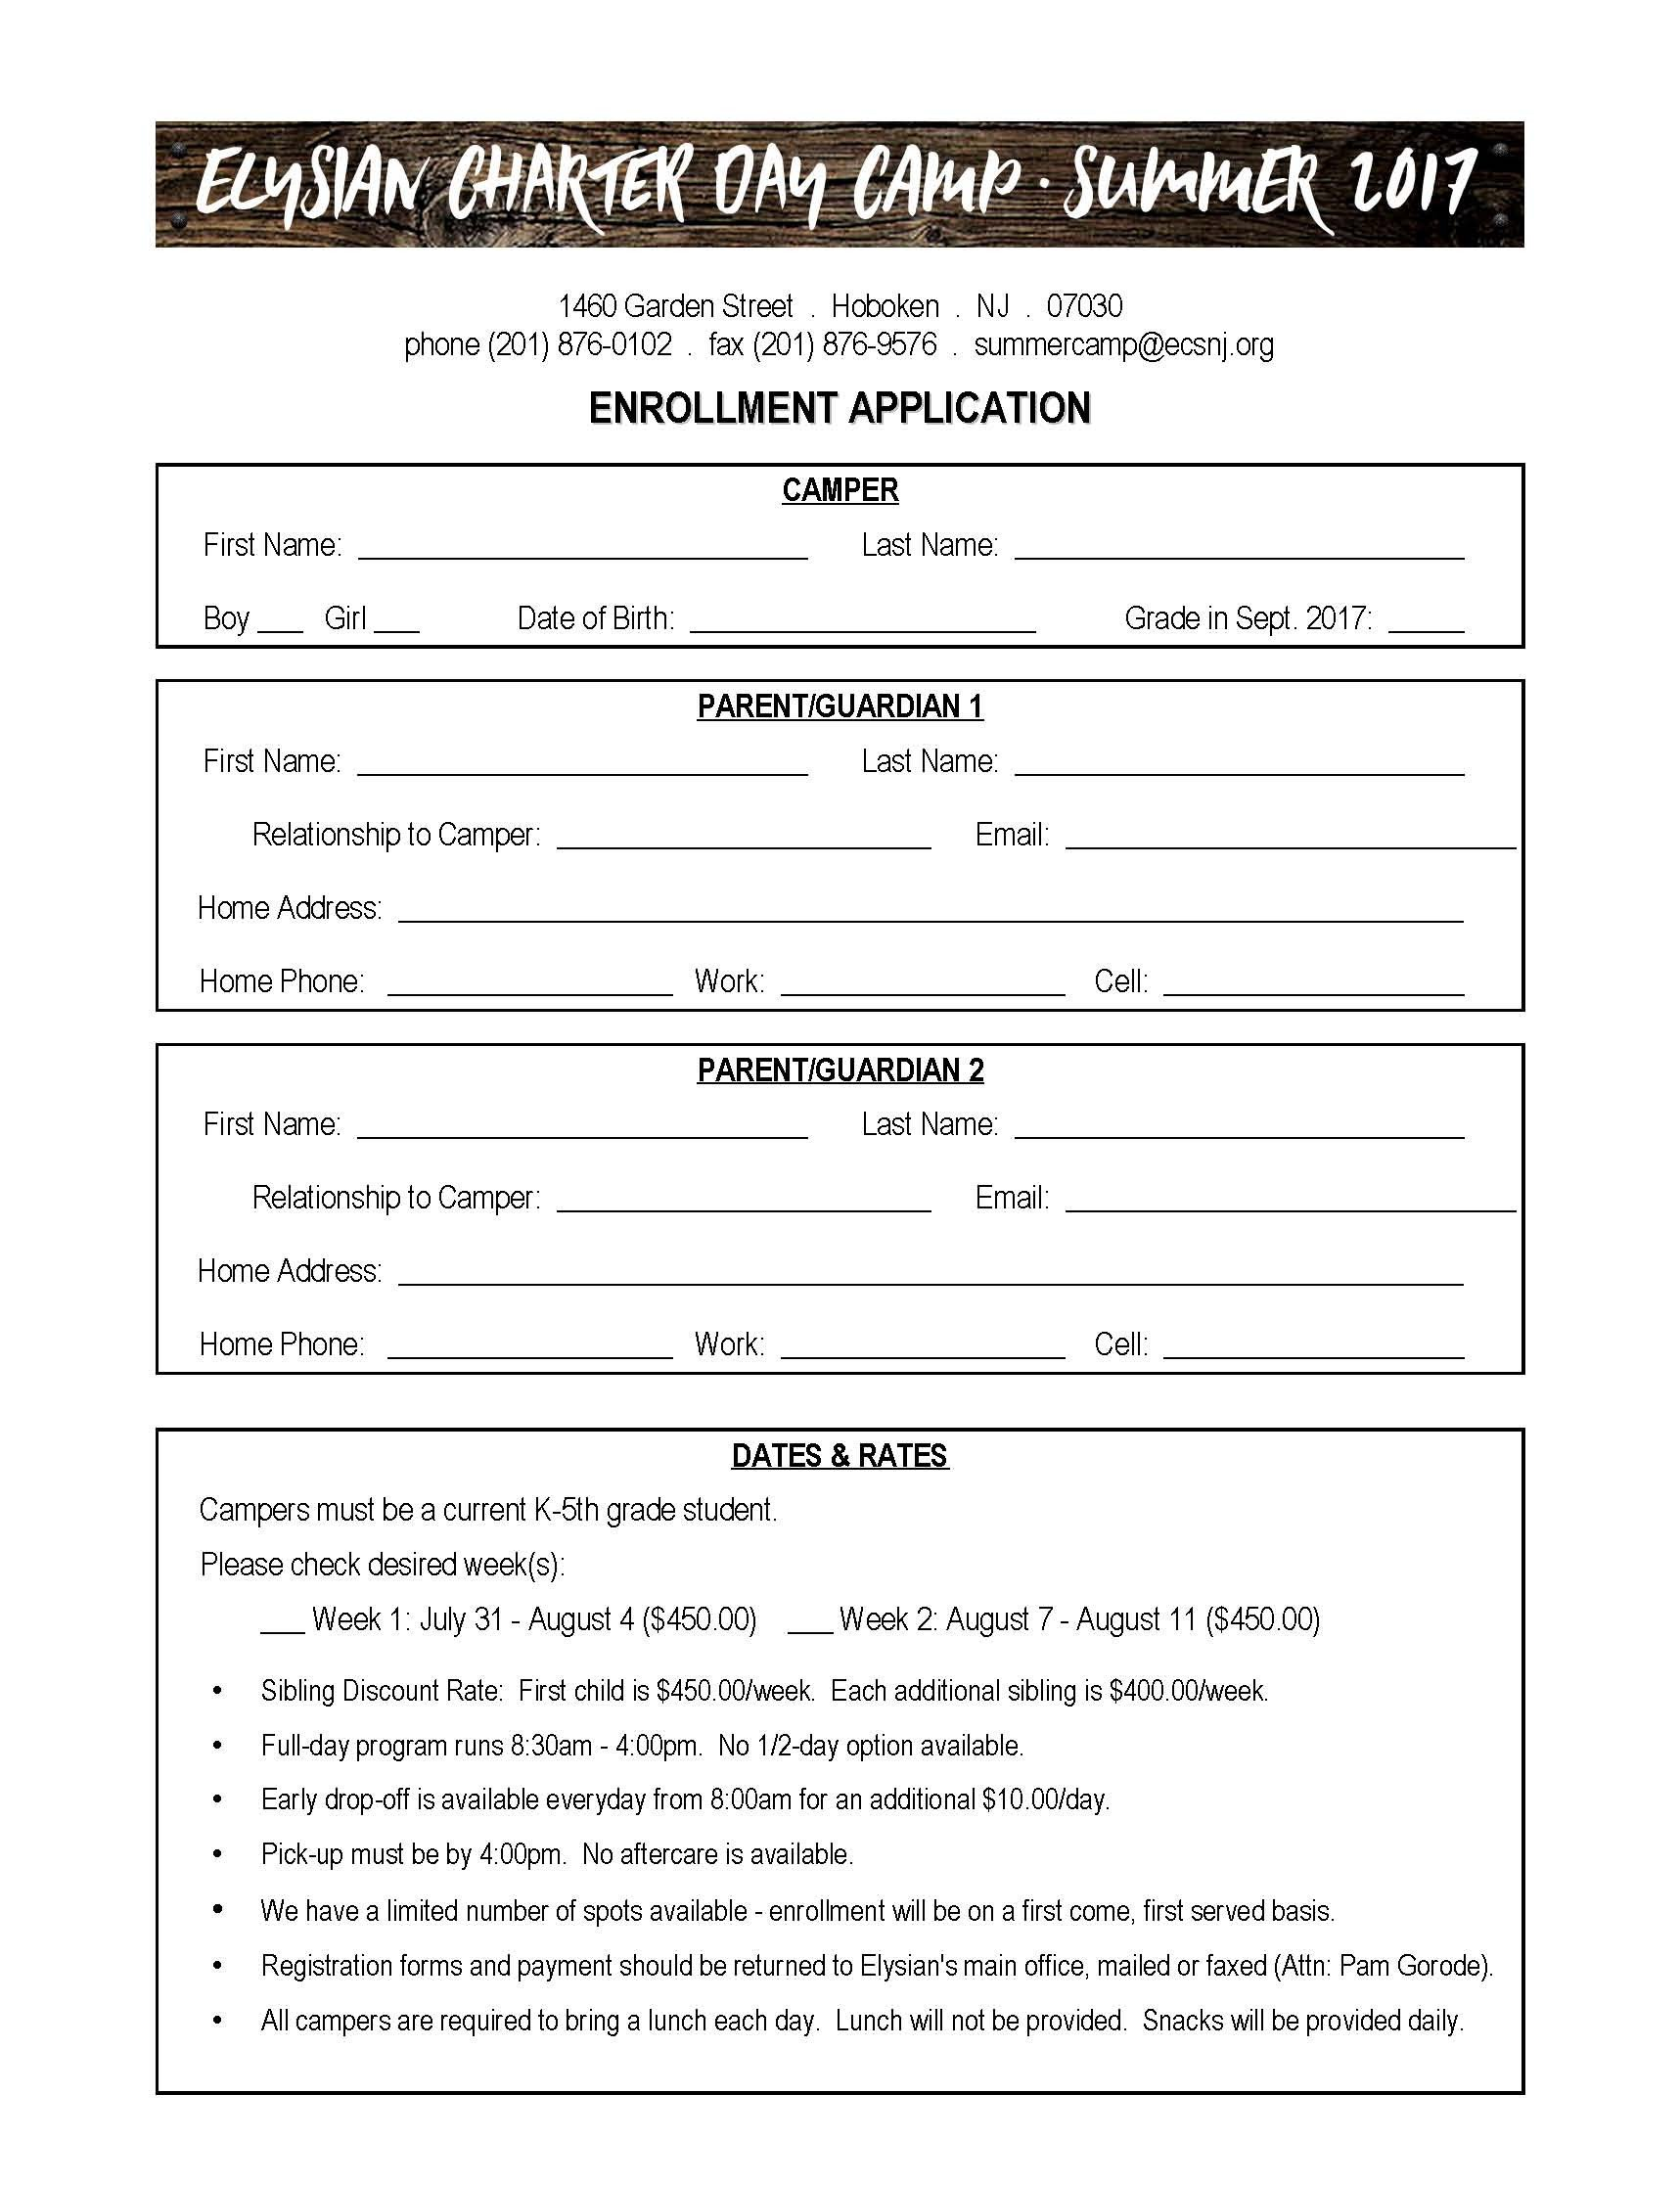 Camp Registration forms Camp Registration form – Elysian Charter School